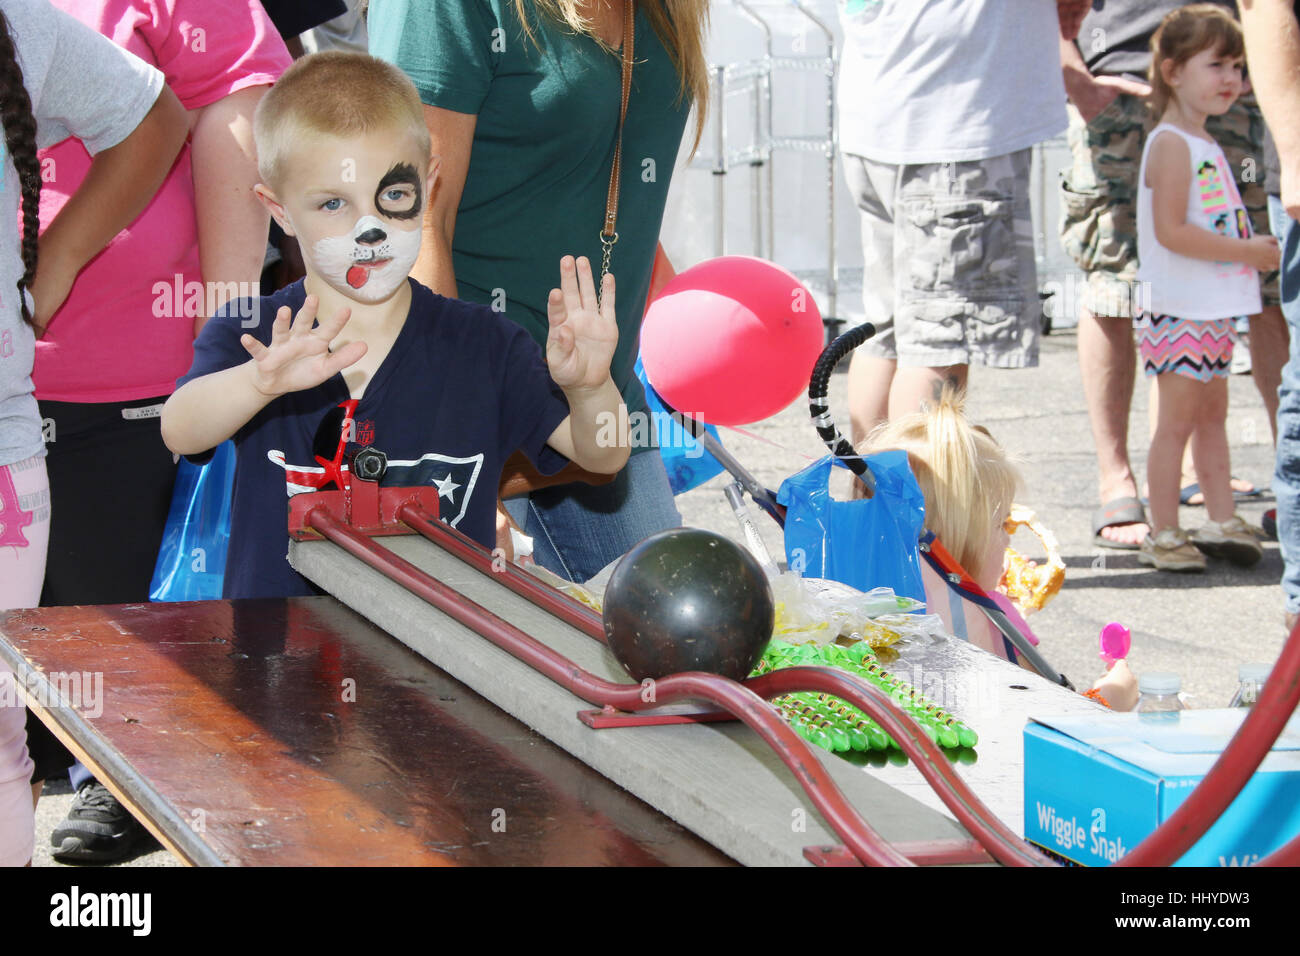 Young boy with face paint rolls a ball down a track in a Roller Bowler carnival game. Beavercreek Popcorn Festival. - Stock Image